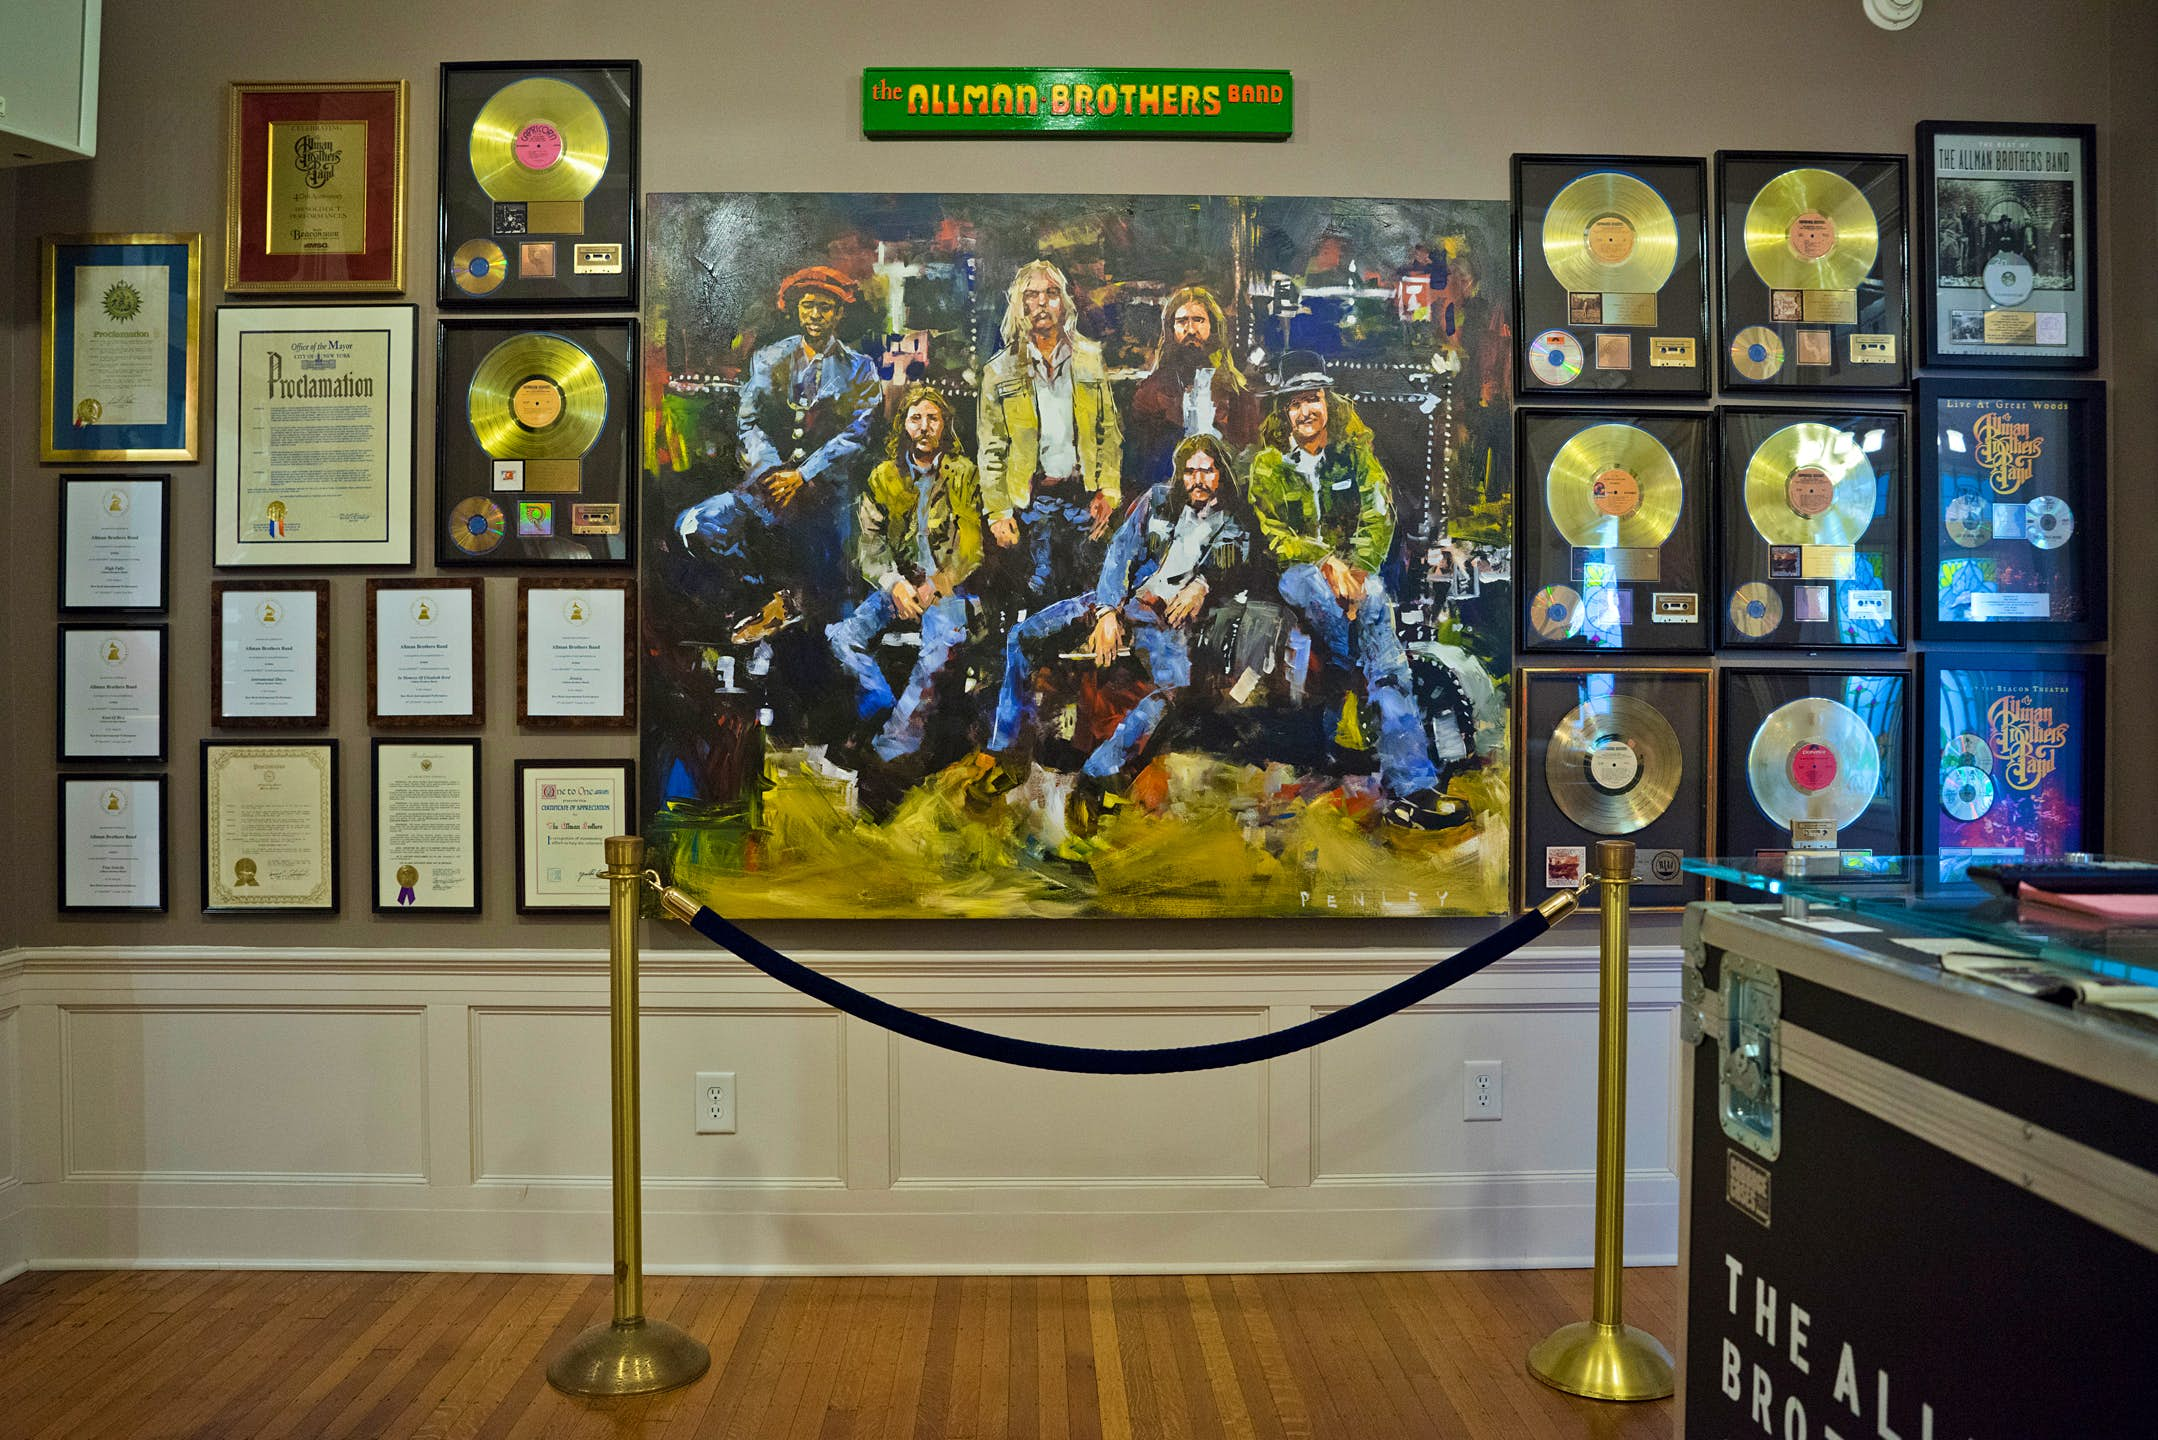 A large image of the Allman Brothers and gold records line the interior of the museum; USA museums for music lovers